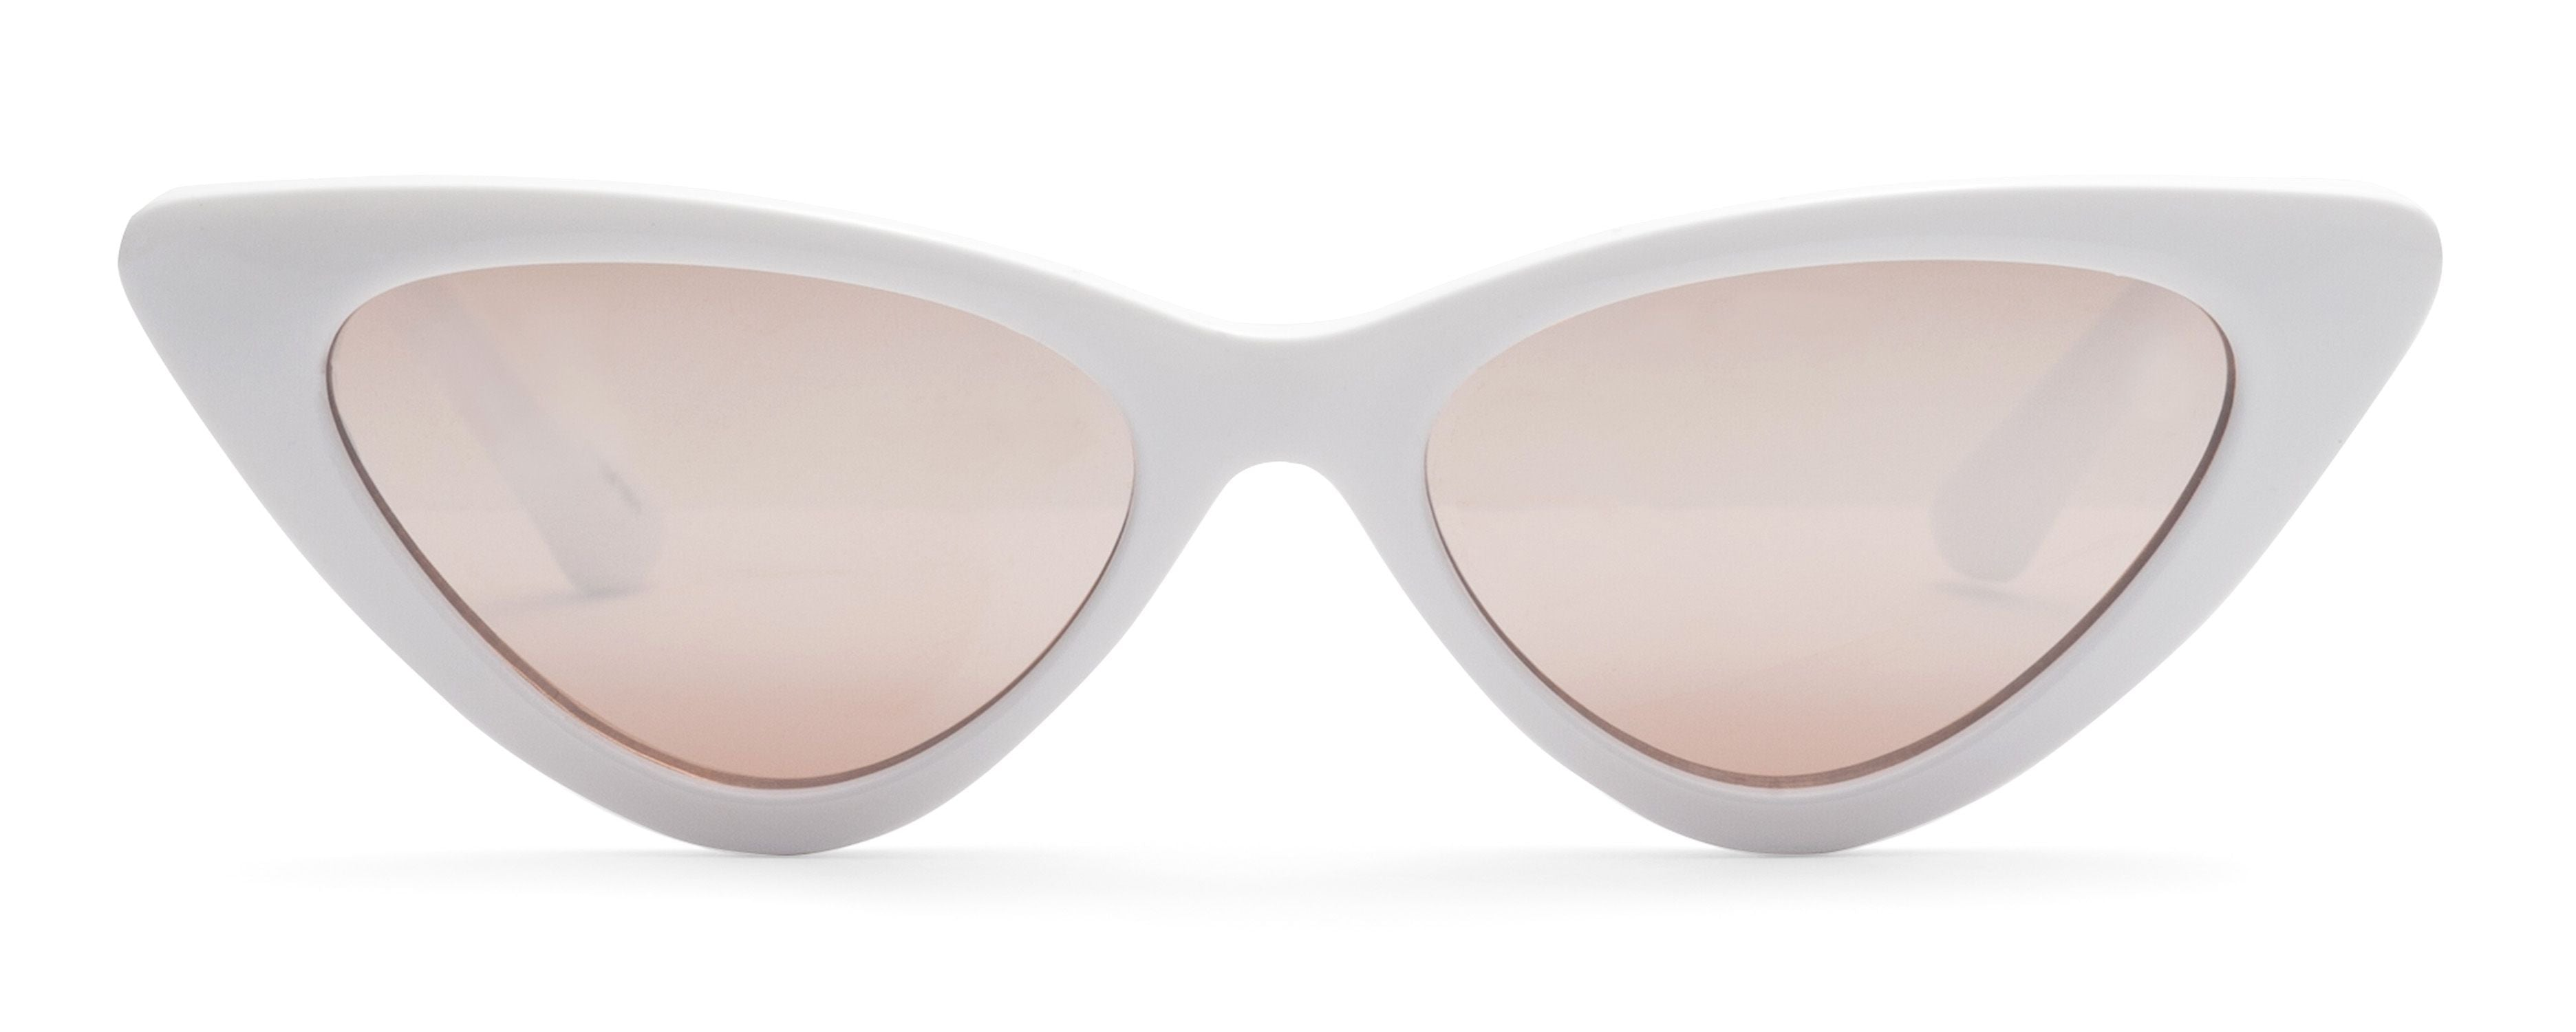 POP White JUNiA Kids Sunglasses